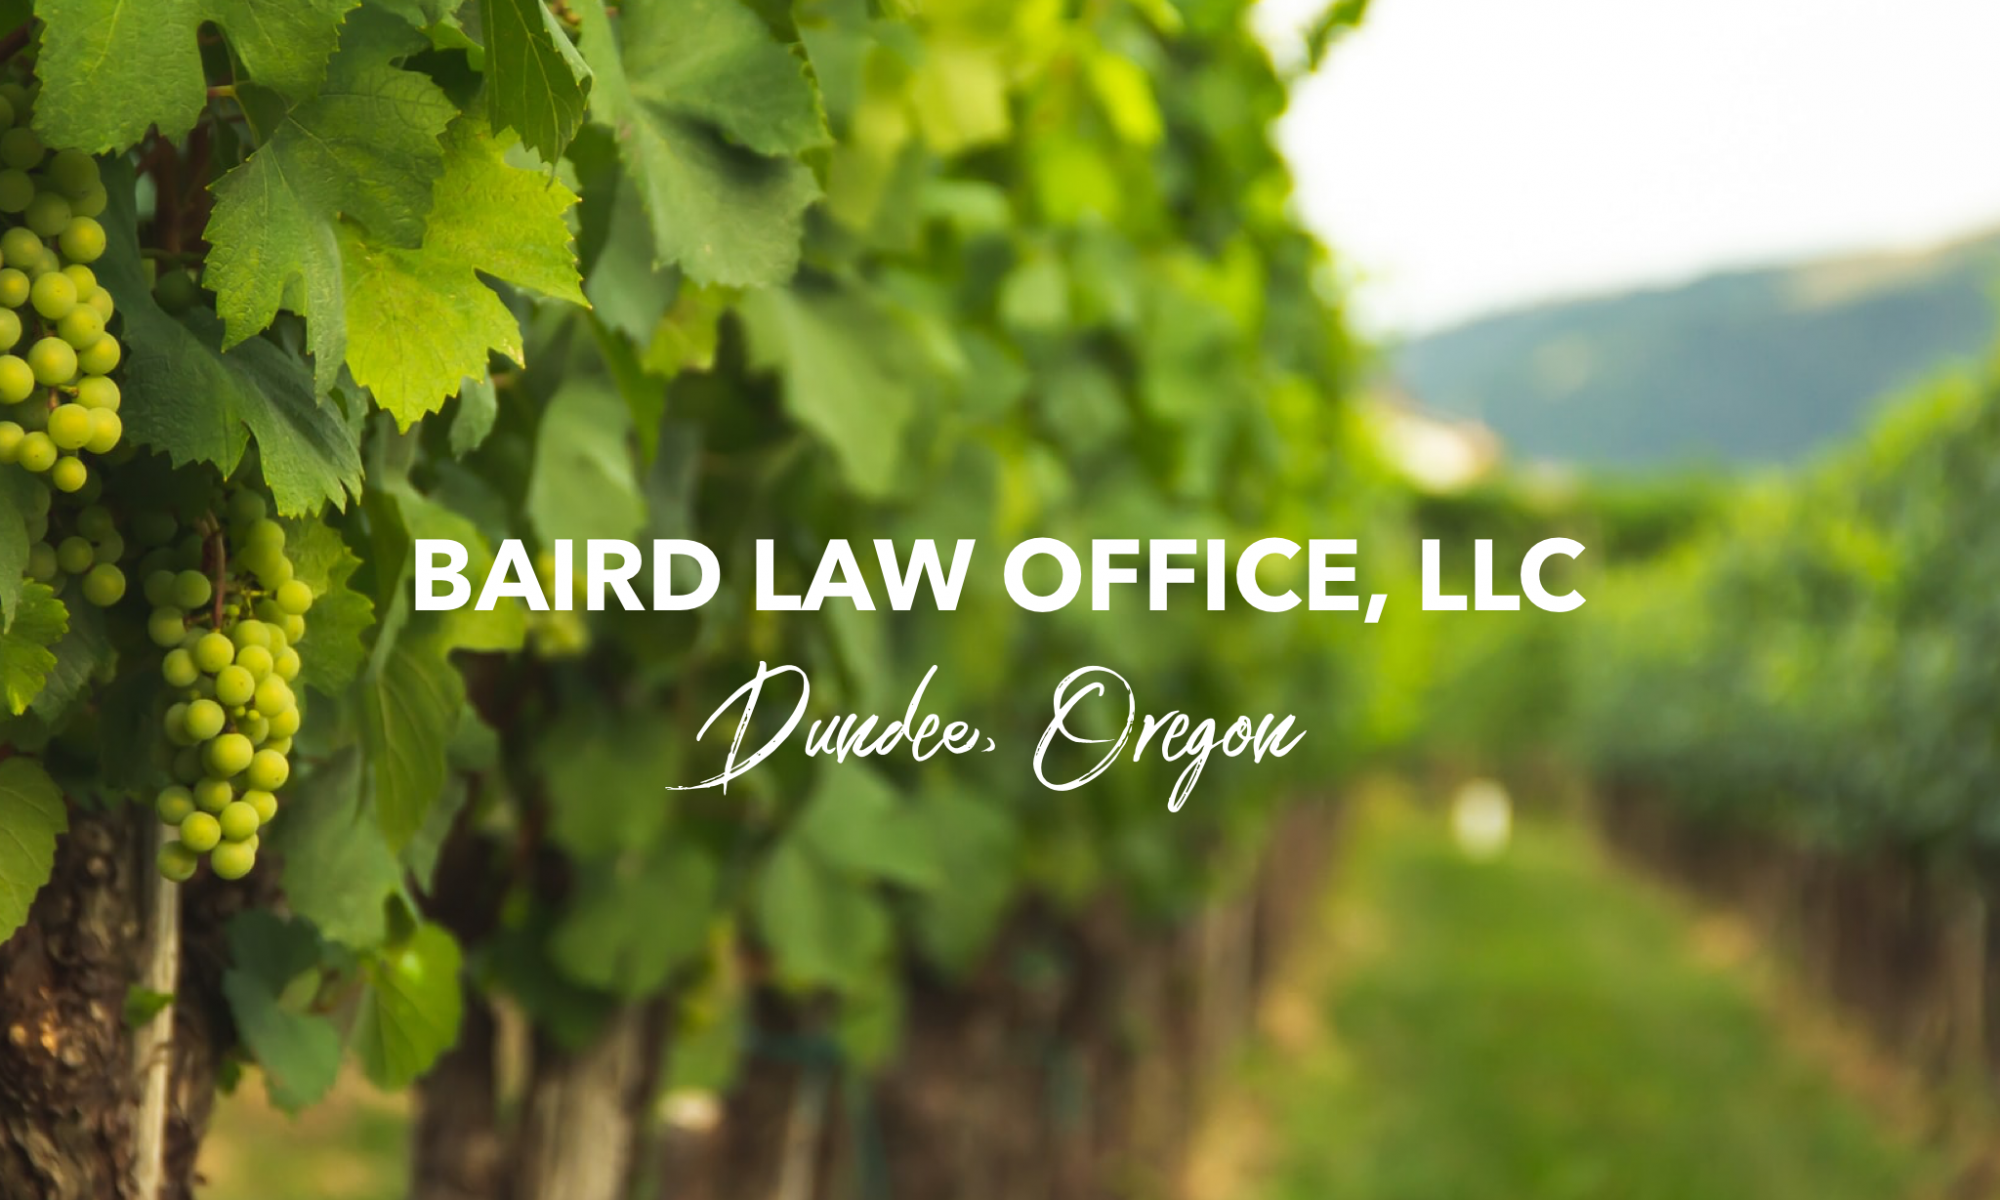 Baird Law Office, LLC